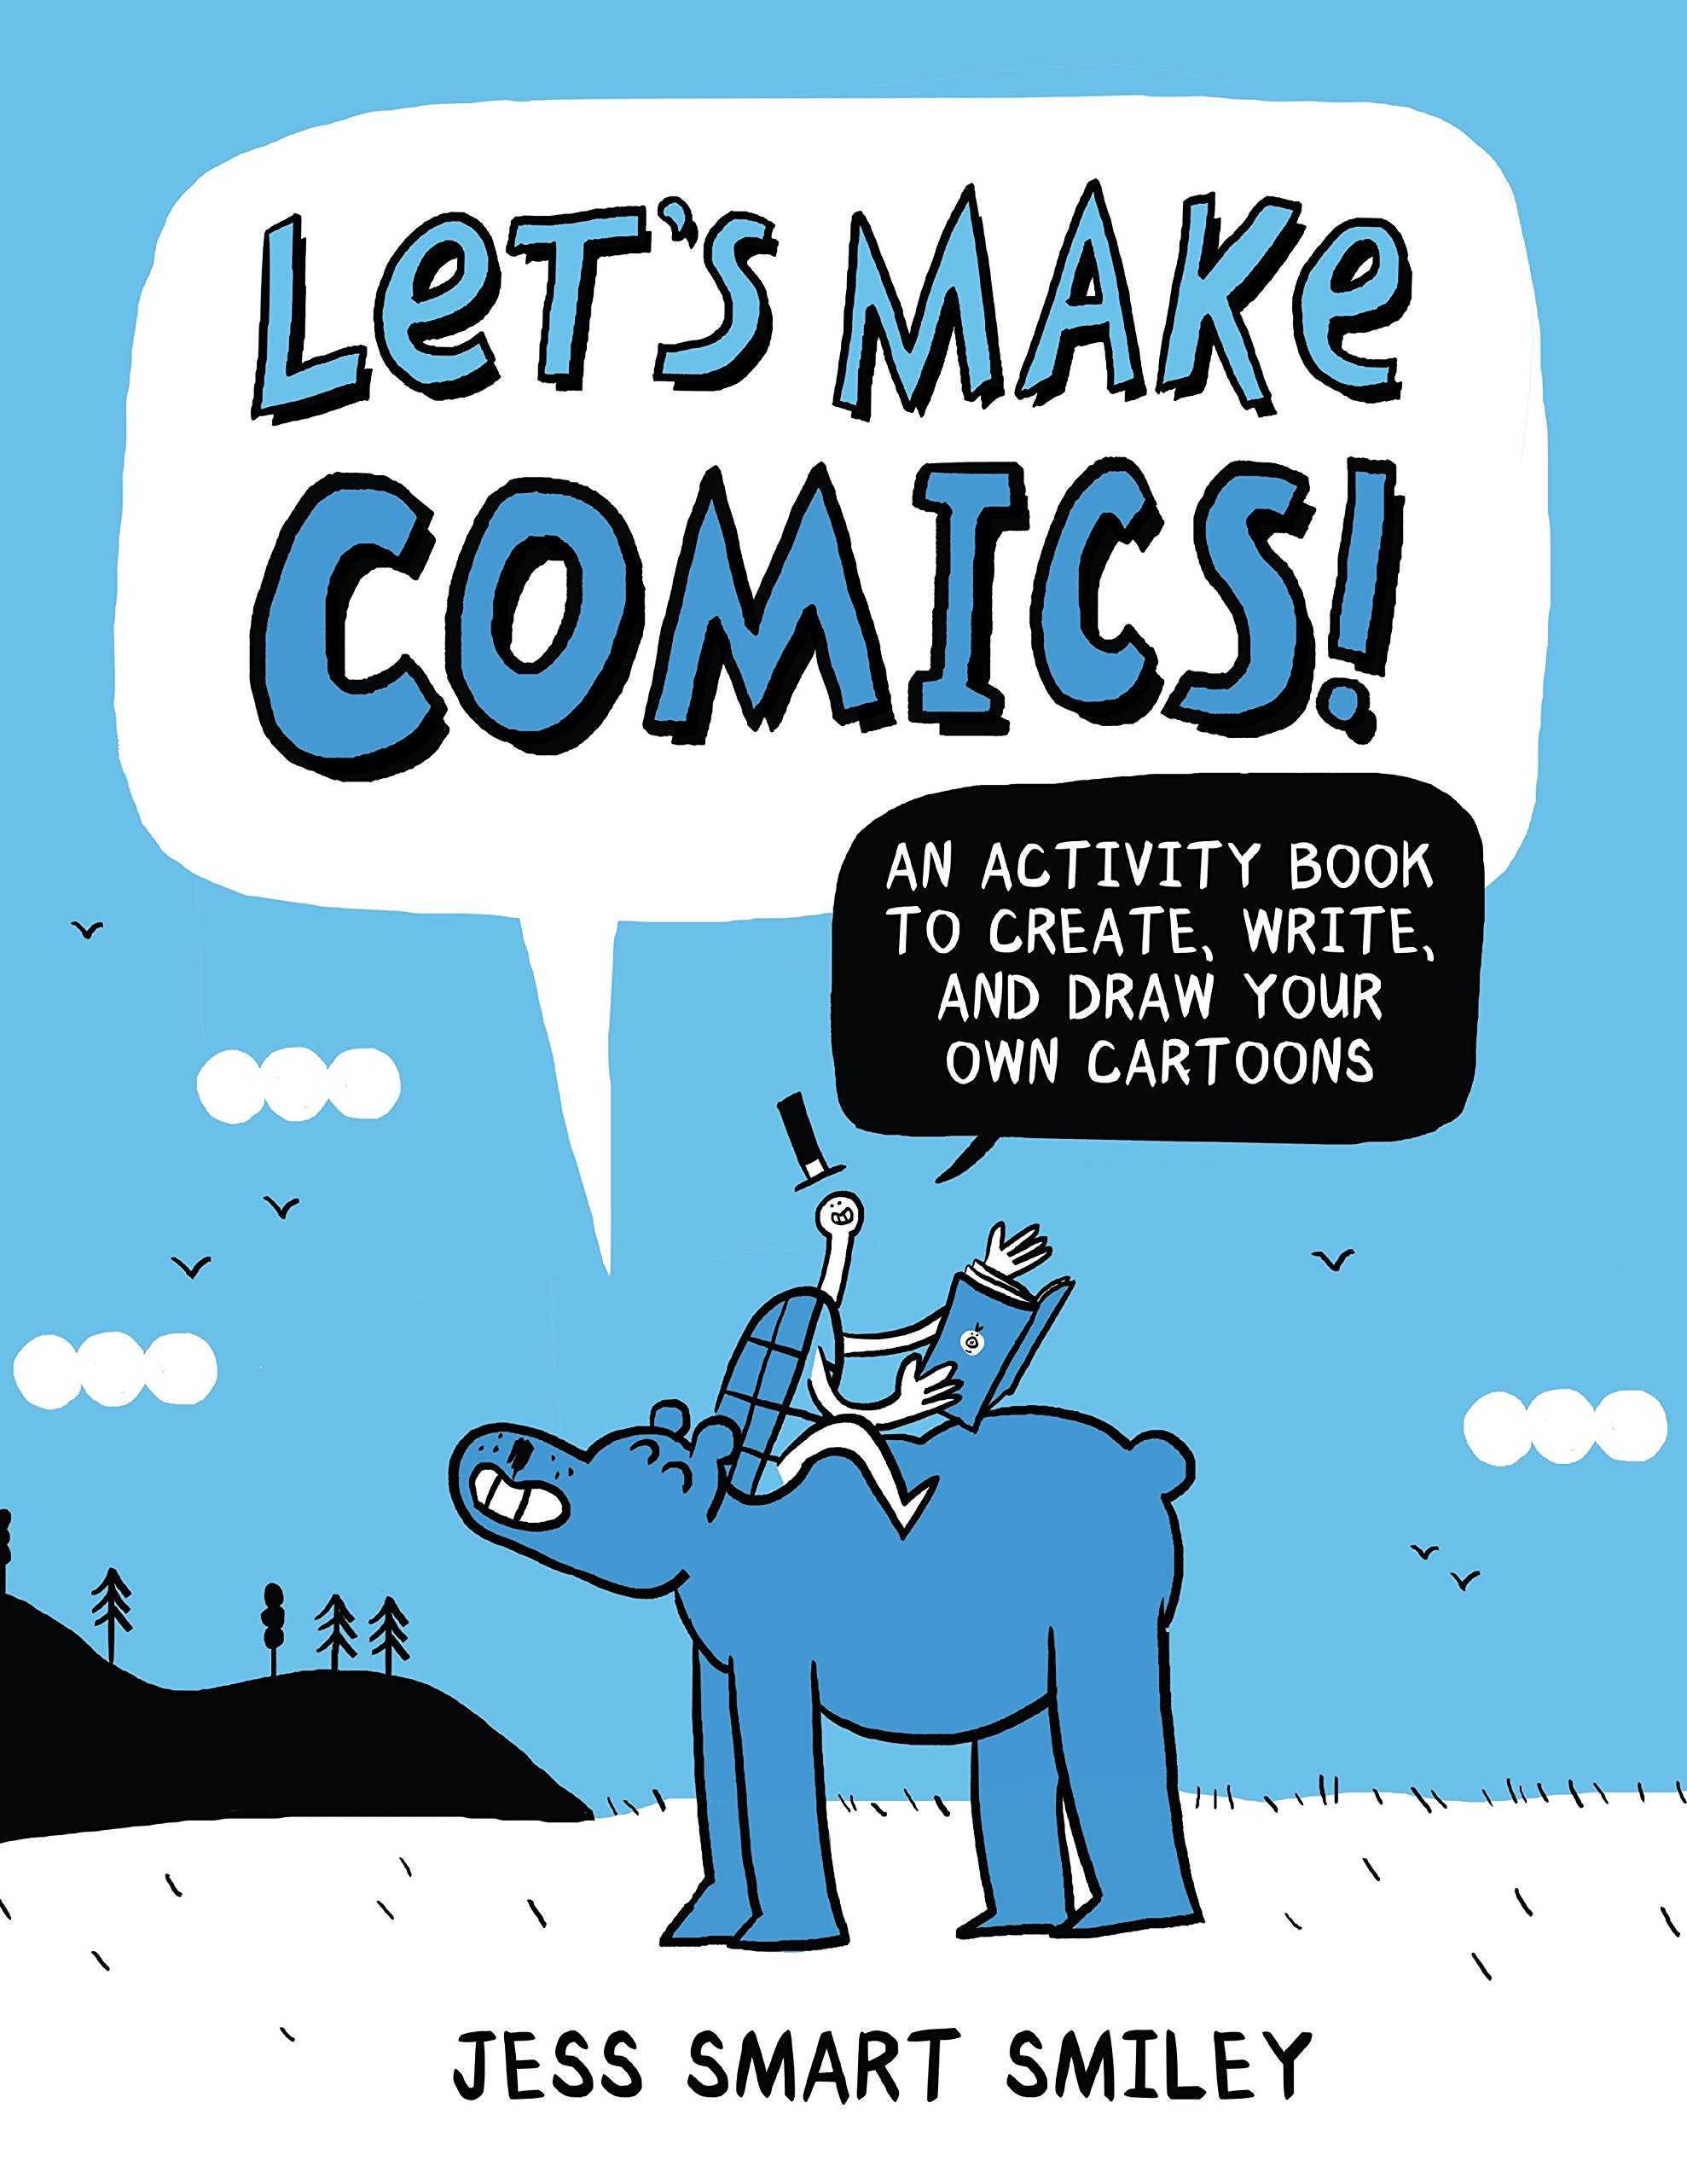 Let's Make Comics!: An Activity Book to Create, Write, and Draw Your Own Cartoons